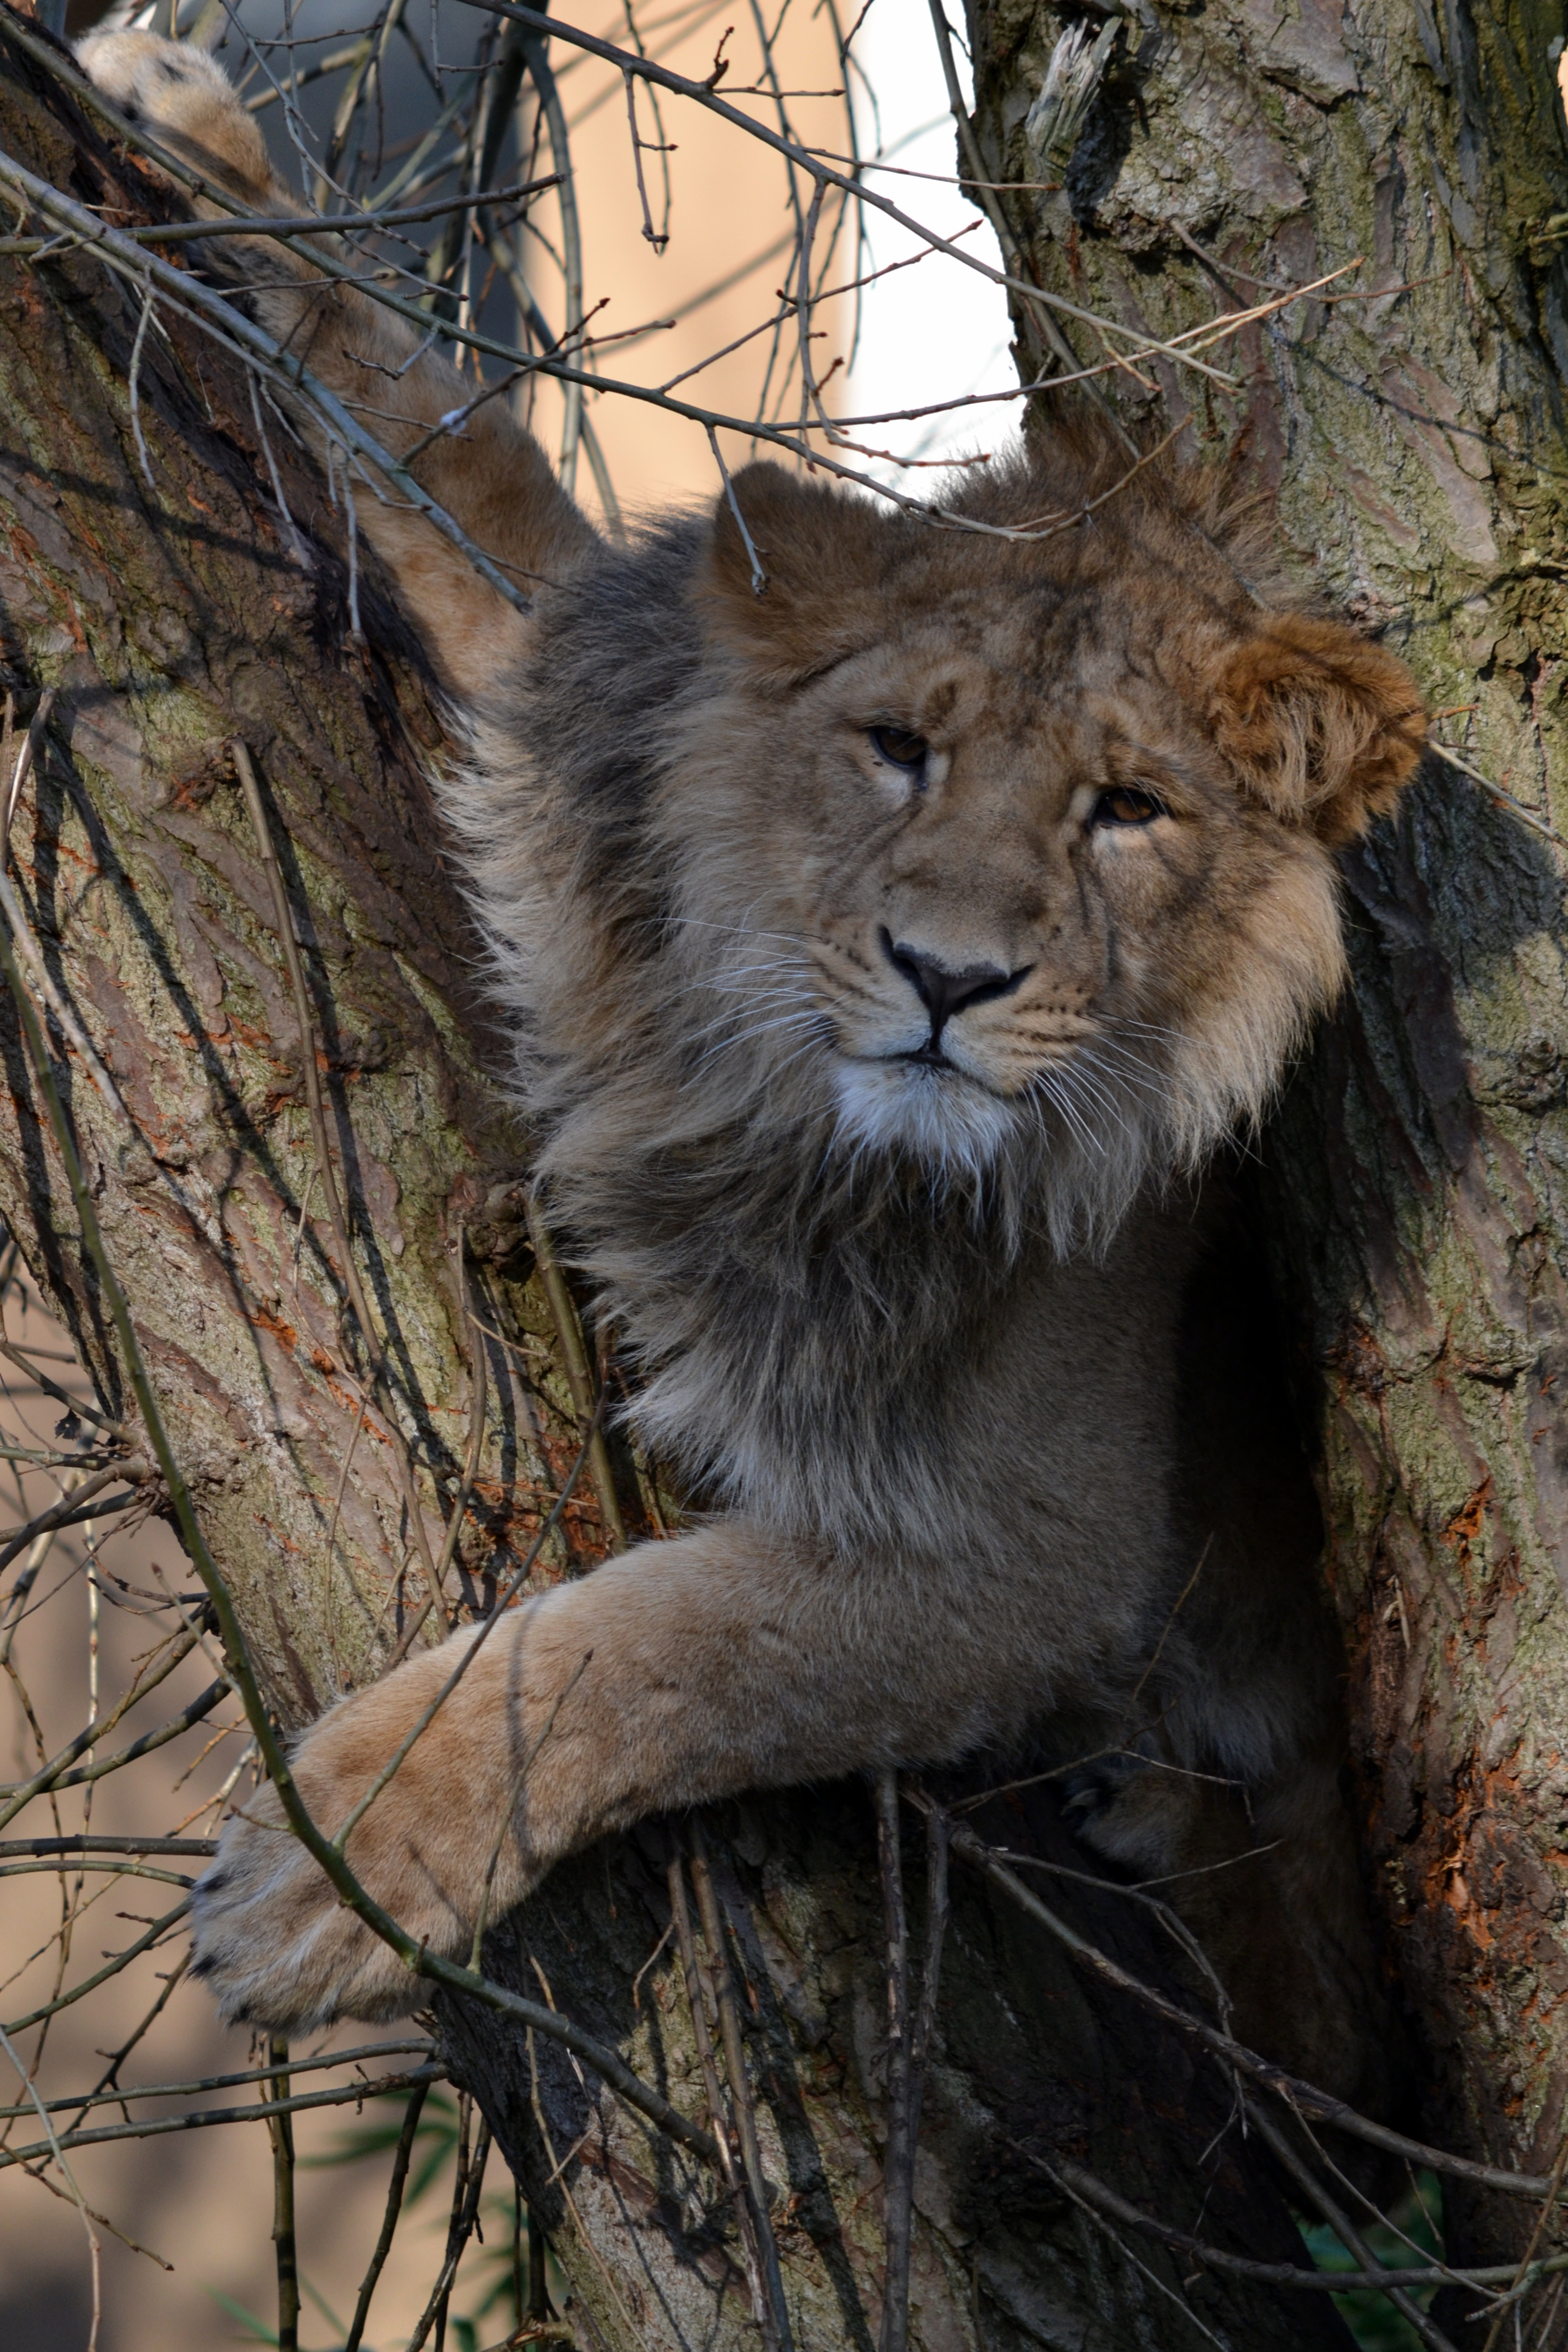 63637 download wallpaper Animals, Lion, Wood, Tree, Beast, Big Cat, Wildlife screensavers and pictures for free